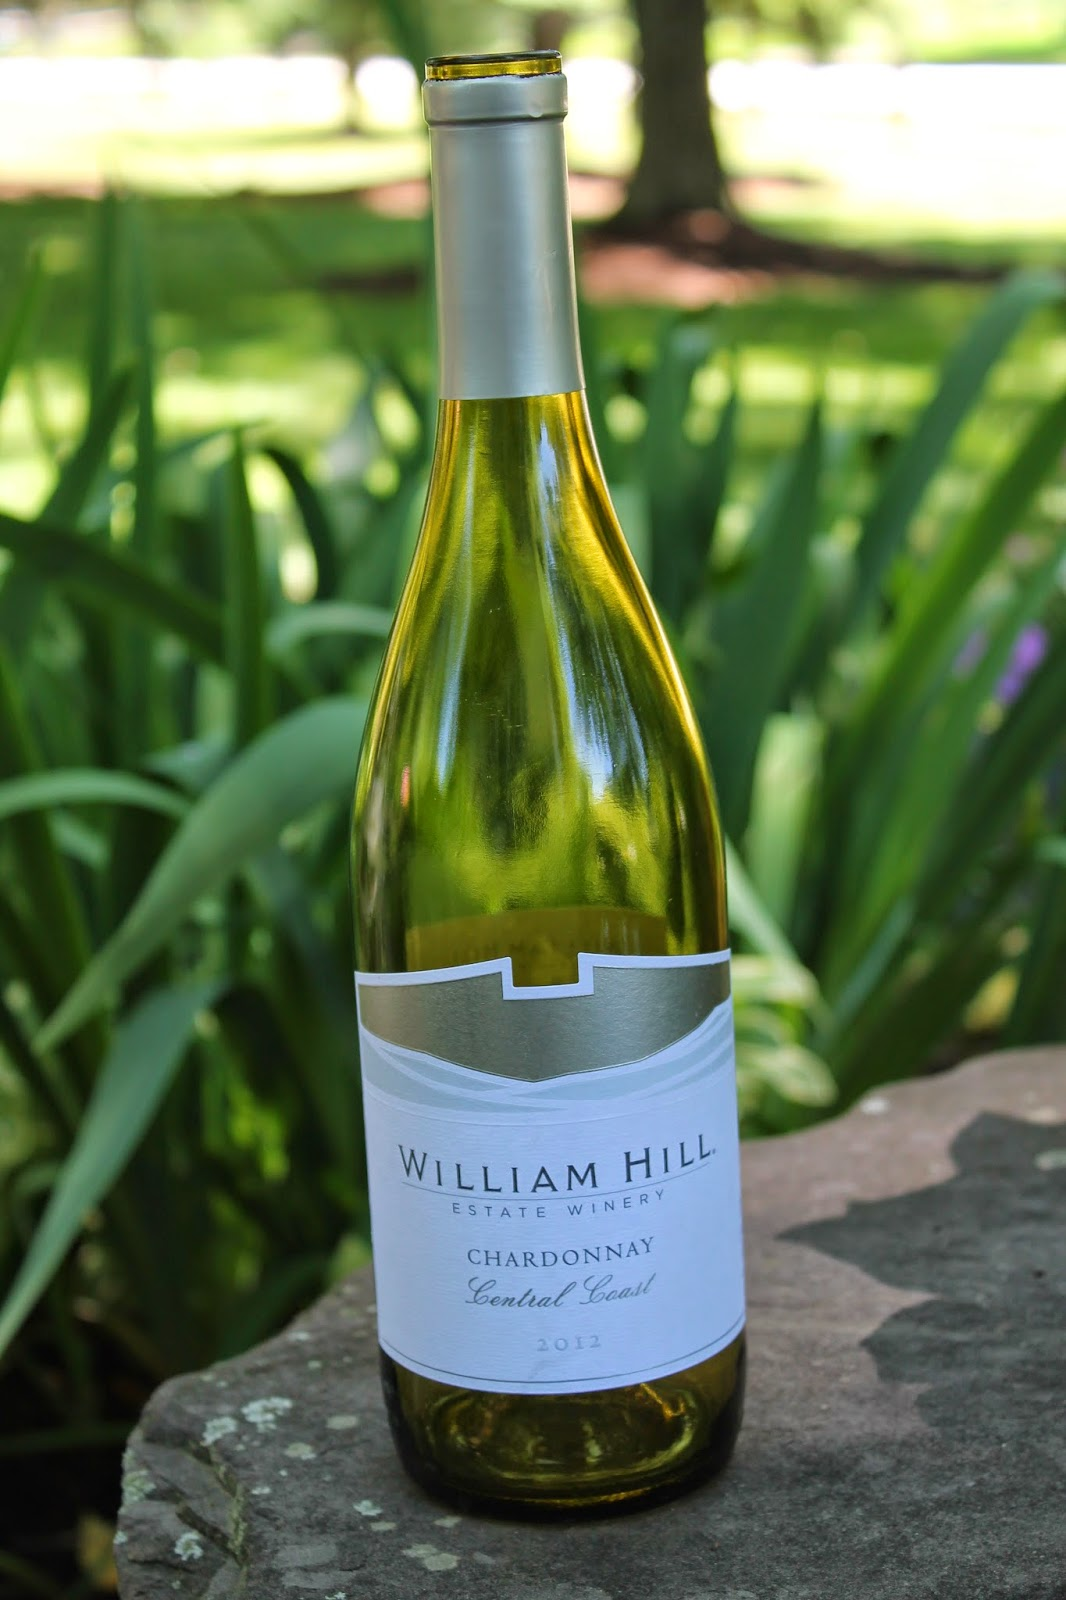 bottle of William Hill Coastal Collection Chardonnay